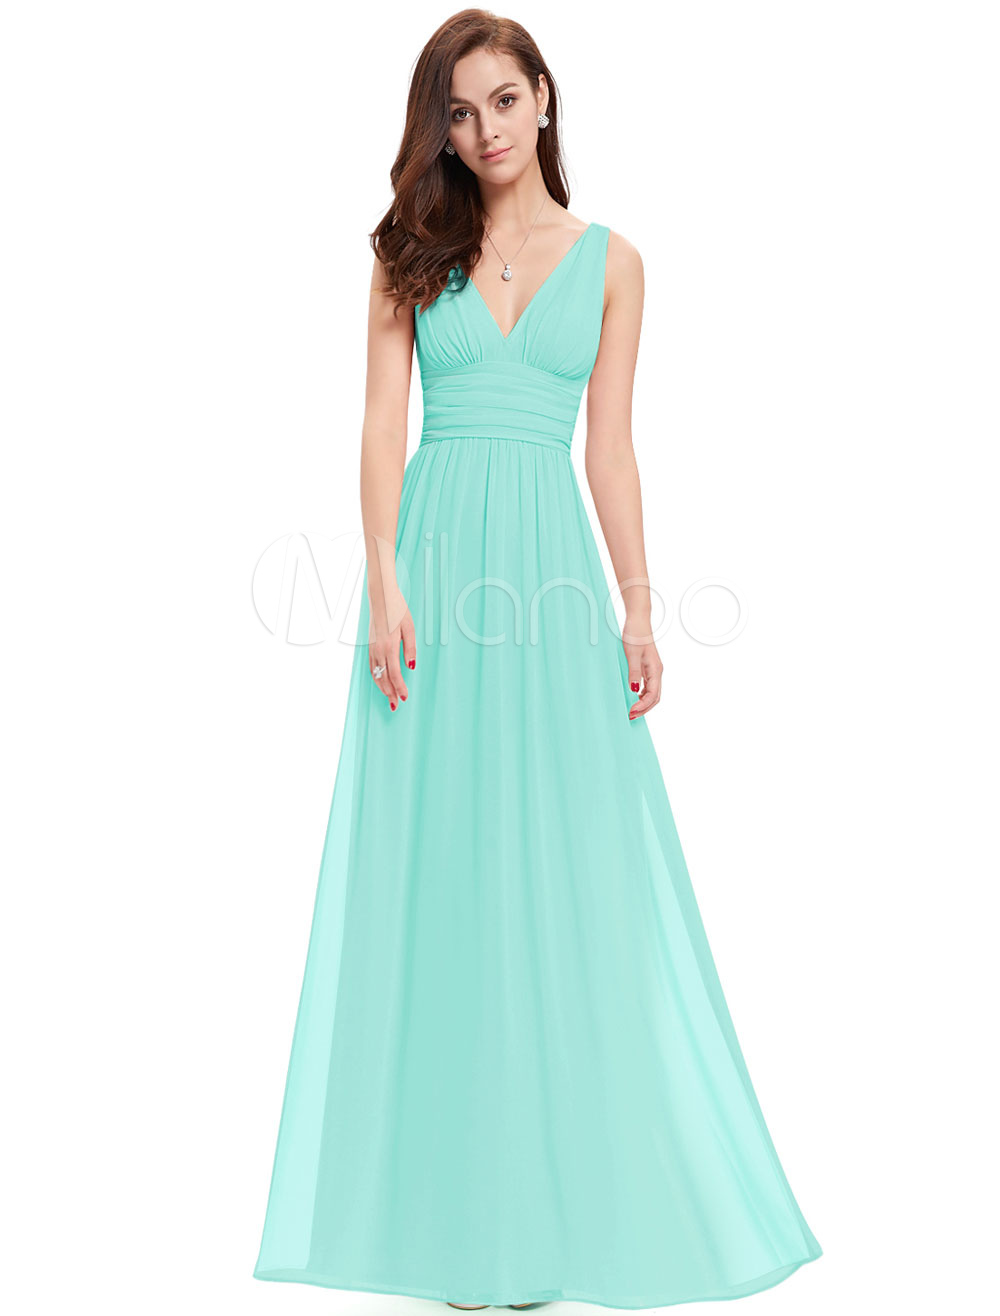 Buy Chiffon Mother Dress Mint Green Long Prom Dress V Neck A Line Floor Length Party Dress for $85.49 in Milanoo store